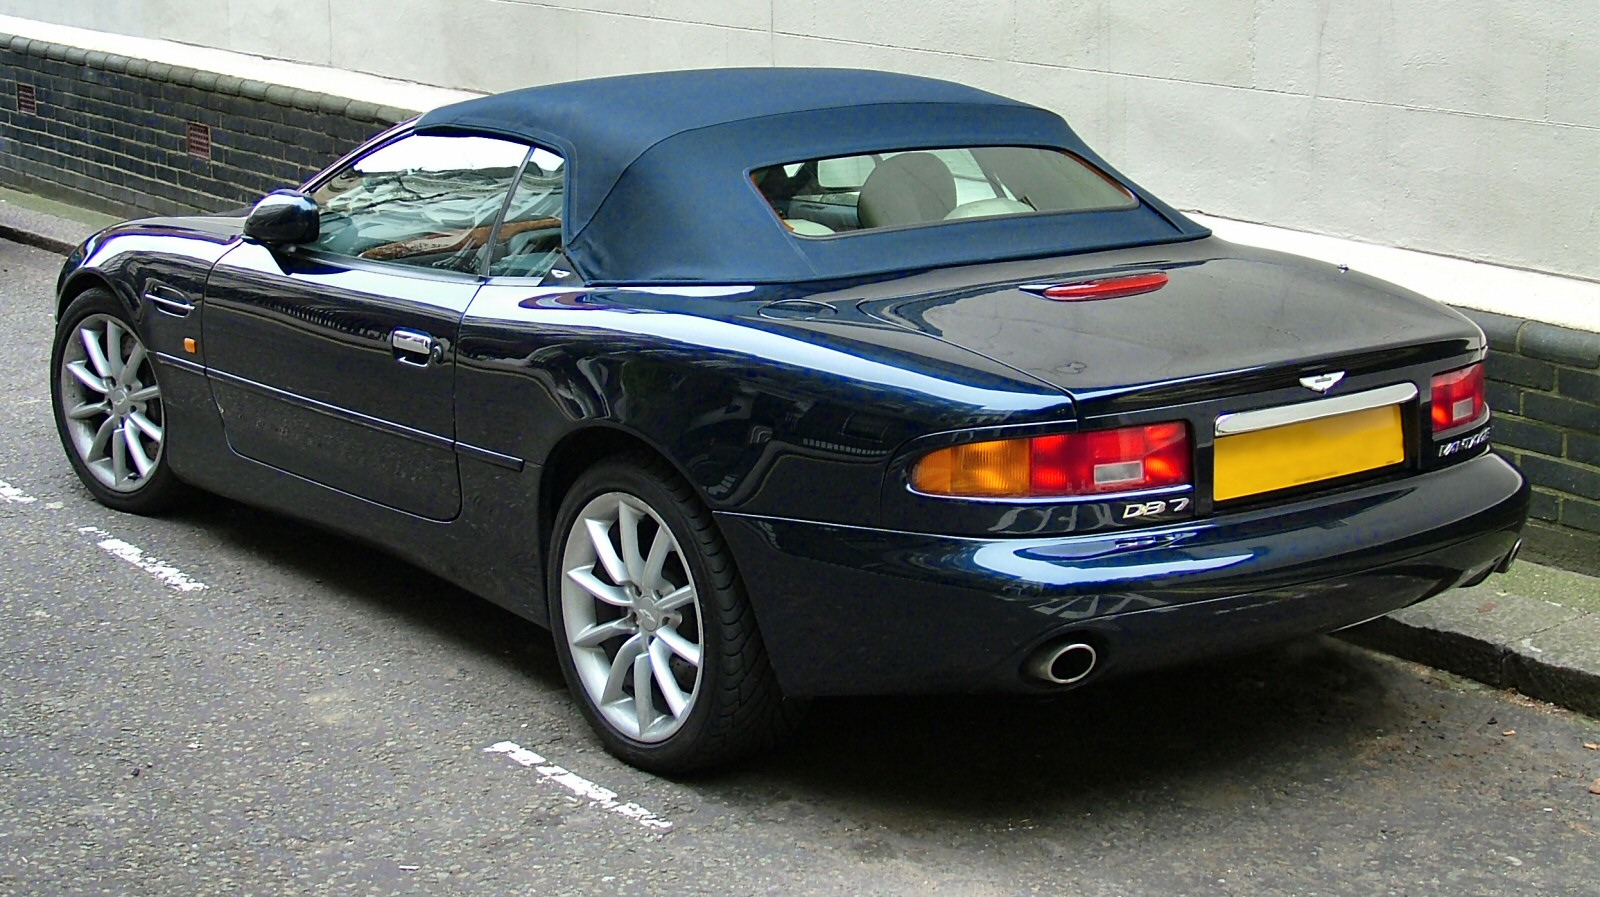 file aston martin db7 vantage rear jpg wikimedia commons